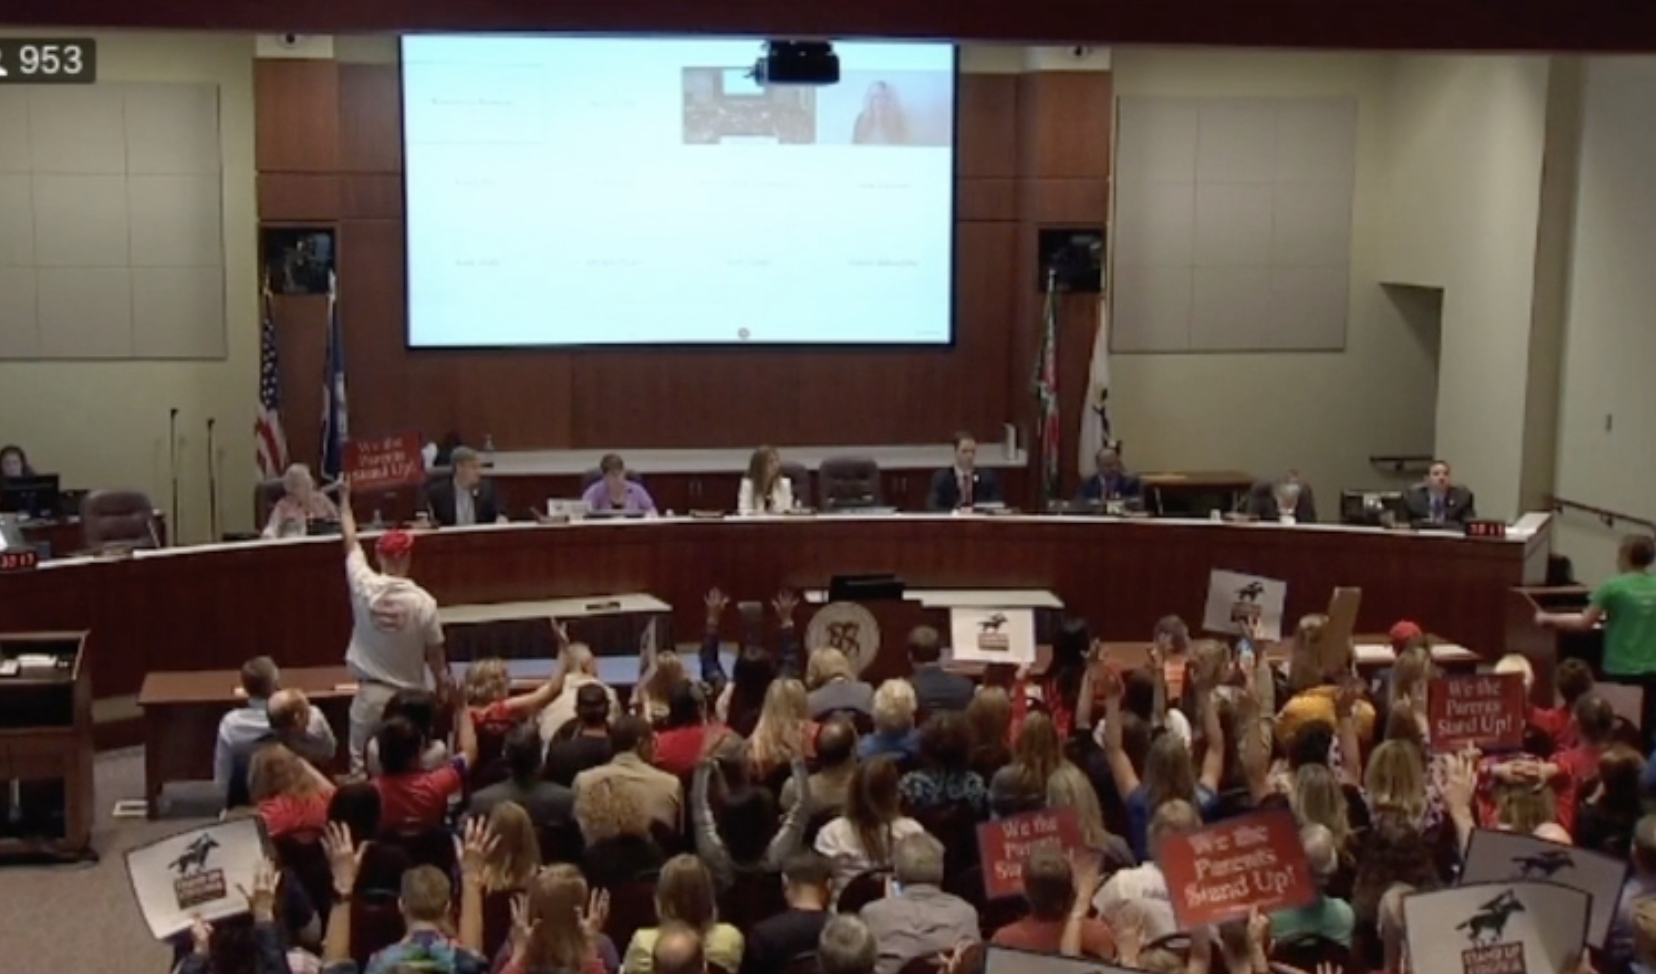 SHE'S BACK: 8th-Grader Shames School Board - 'How Evil Can You Be?'